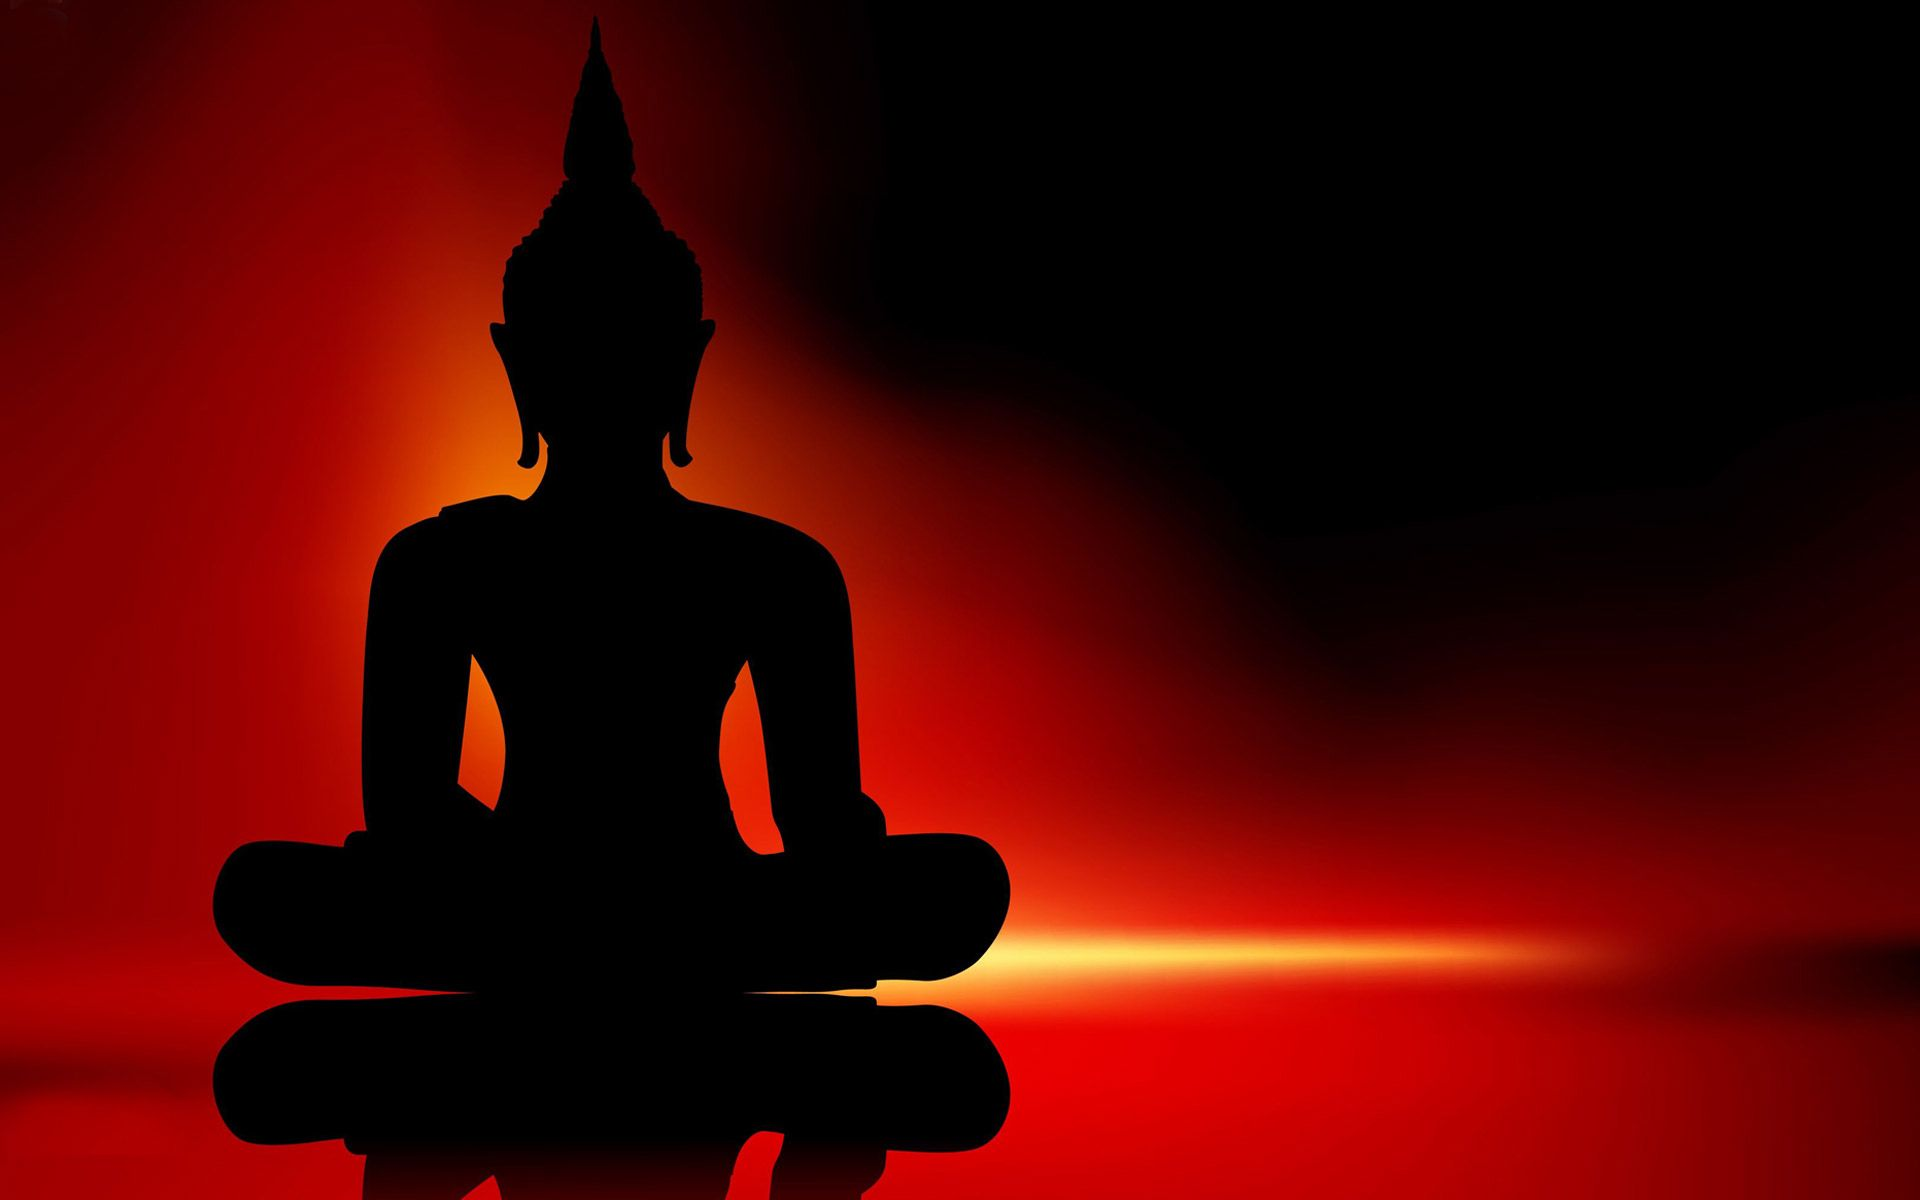 Pin By Tracey On Inspirational Lord Buddha Wallpapers Buddha Wallpaper